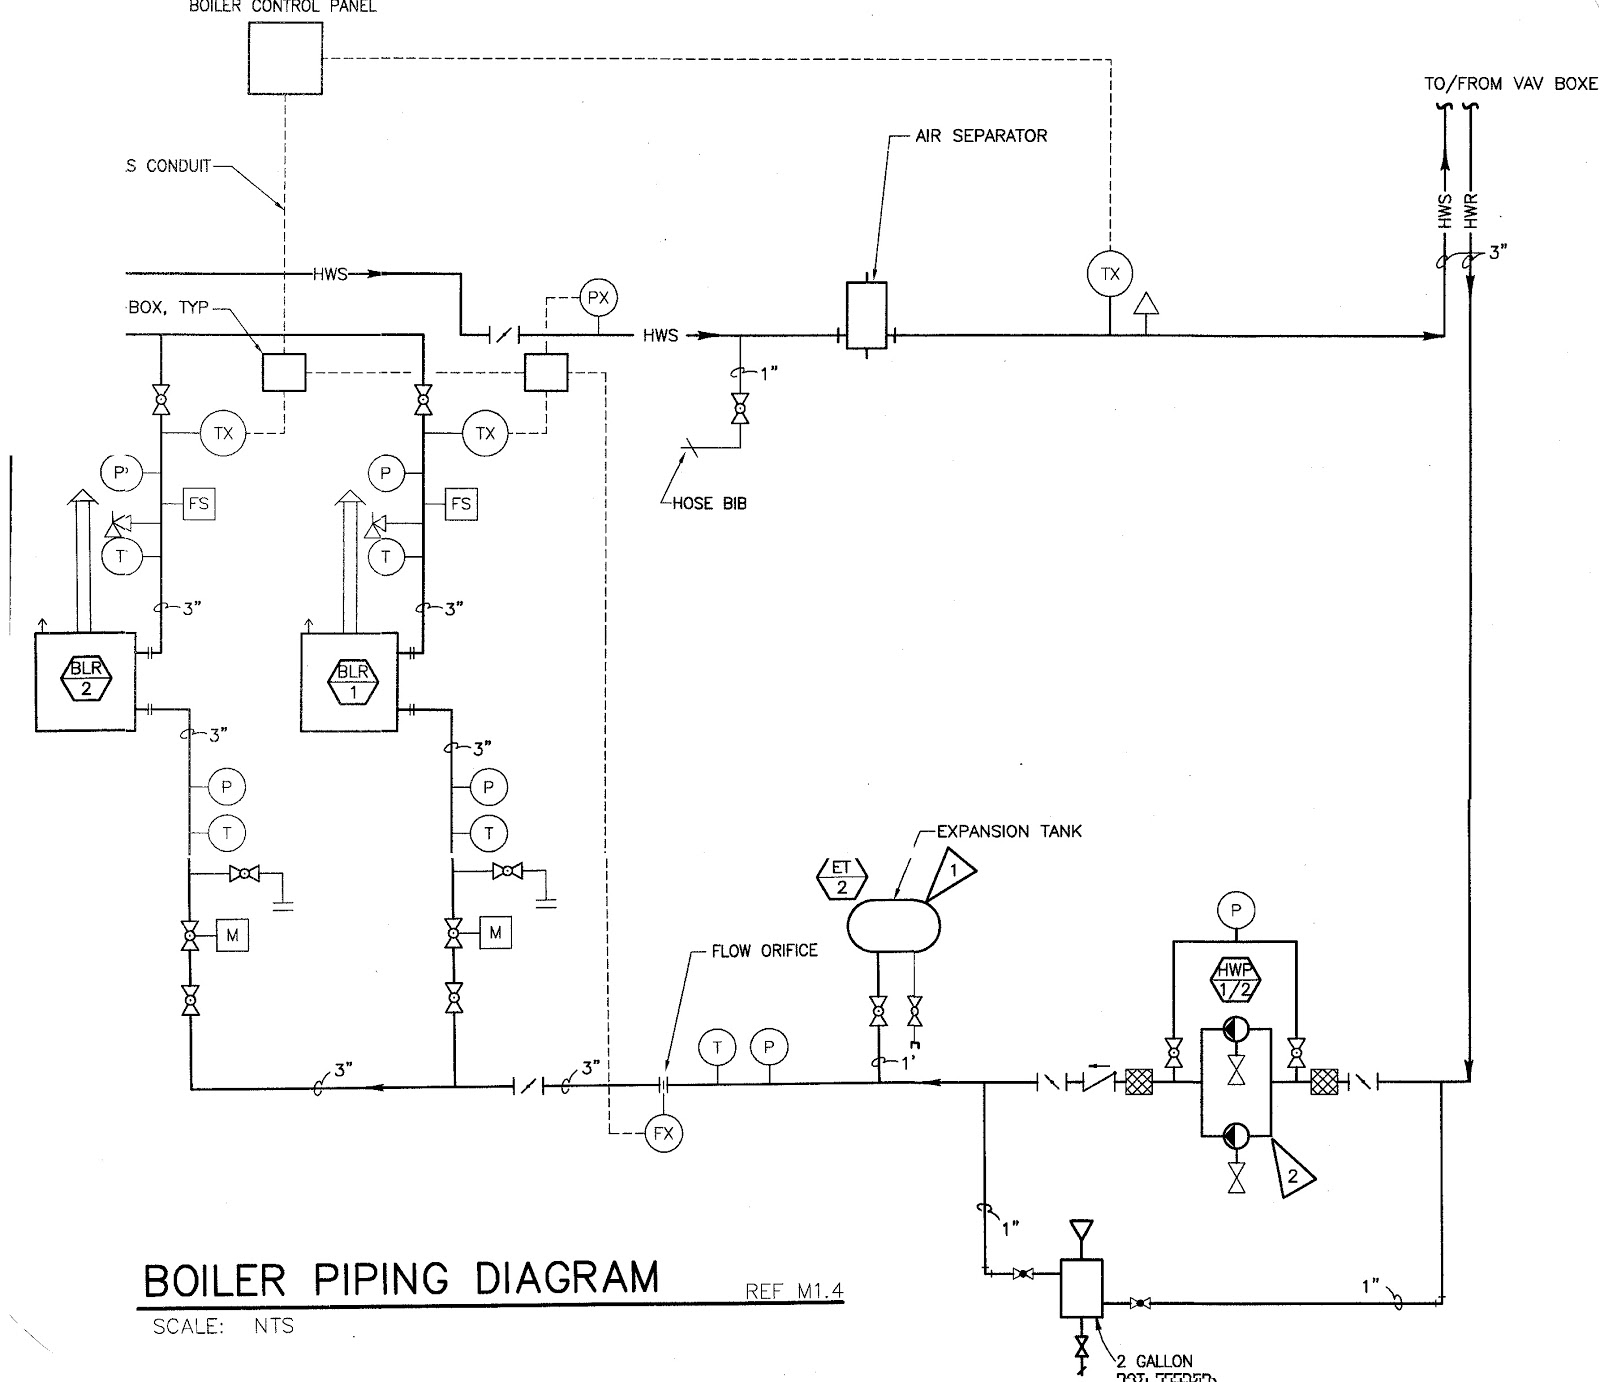 Primary Secondary Boiler Loop Piping also Steam Boiler Piping Diagram additionally Pellet Stove Diagram Also Primary Secondary Boiler Piping Diagrams additionally Primary Secondary Hydronic Piping Diagrams also Hydronic Boiler Piping Diagram Primary Loop. on primary secondary boiler piping diagrams